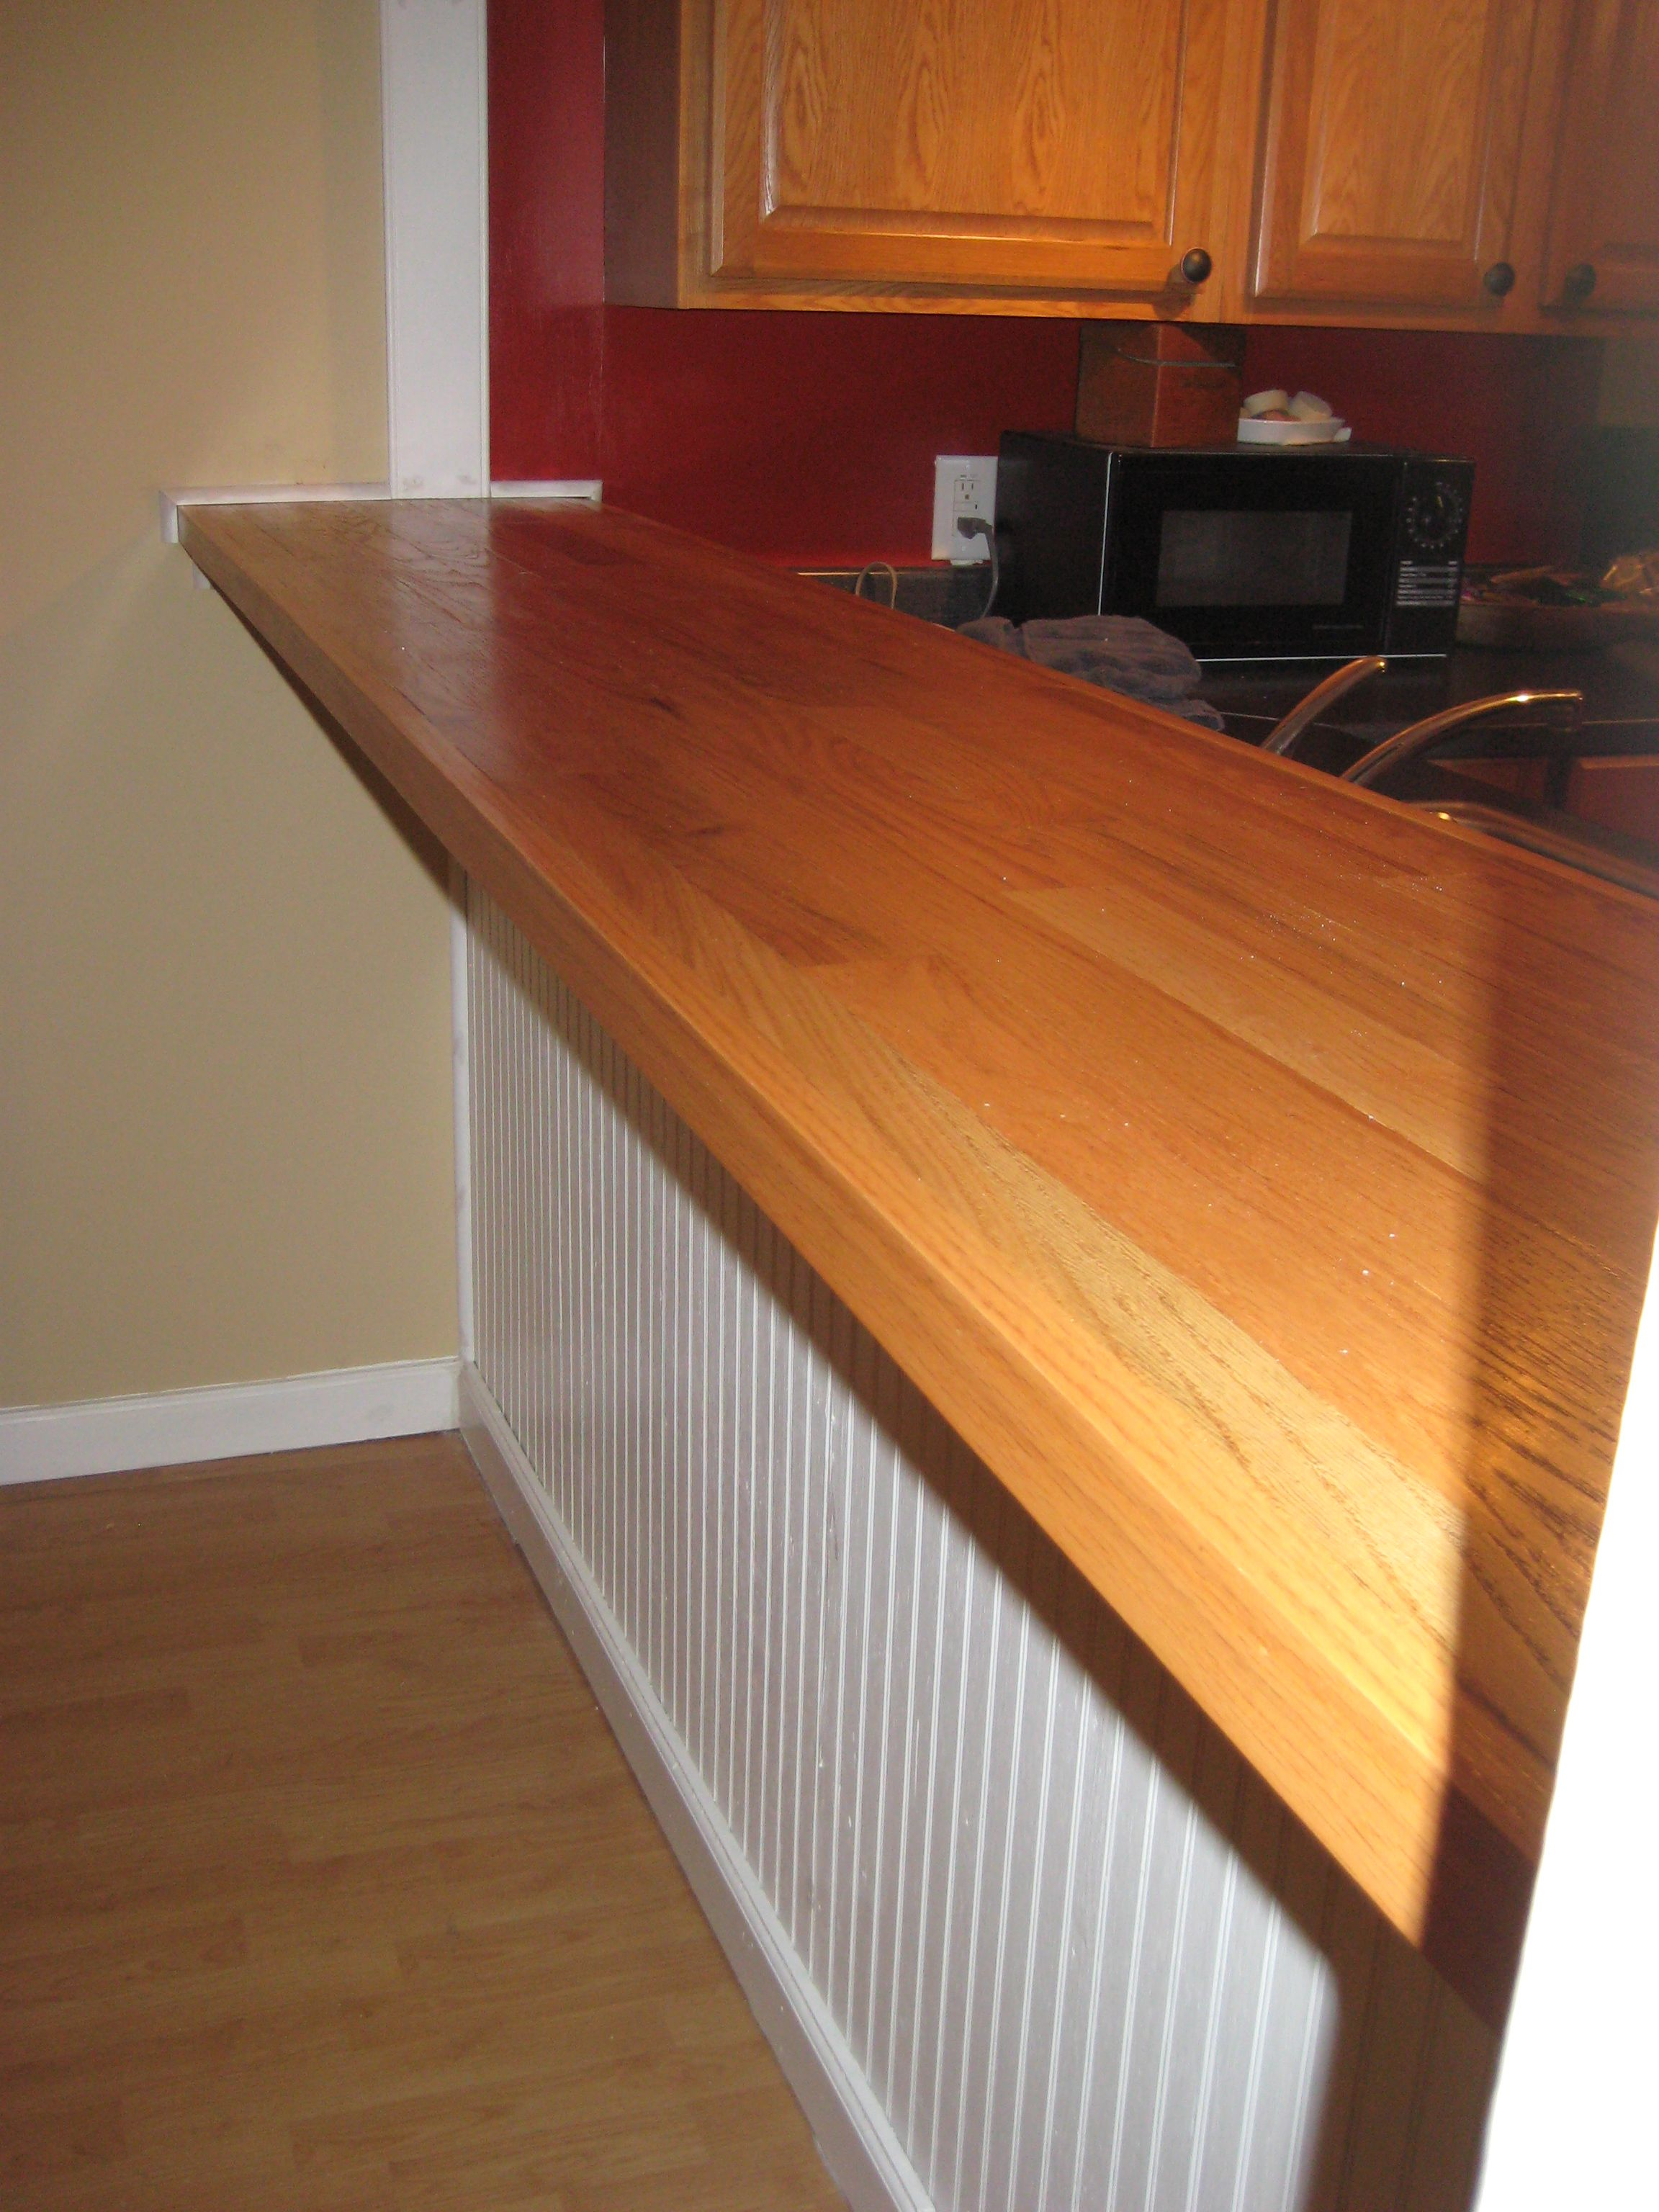 Bar Top Ideas Basement Interesting Diy Bar Top Made With Plywood Oak Hardwood Flooring Nail Gun Inspiration Design